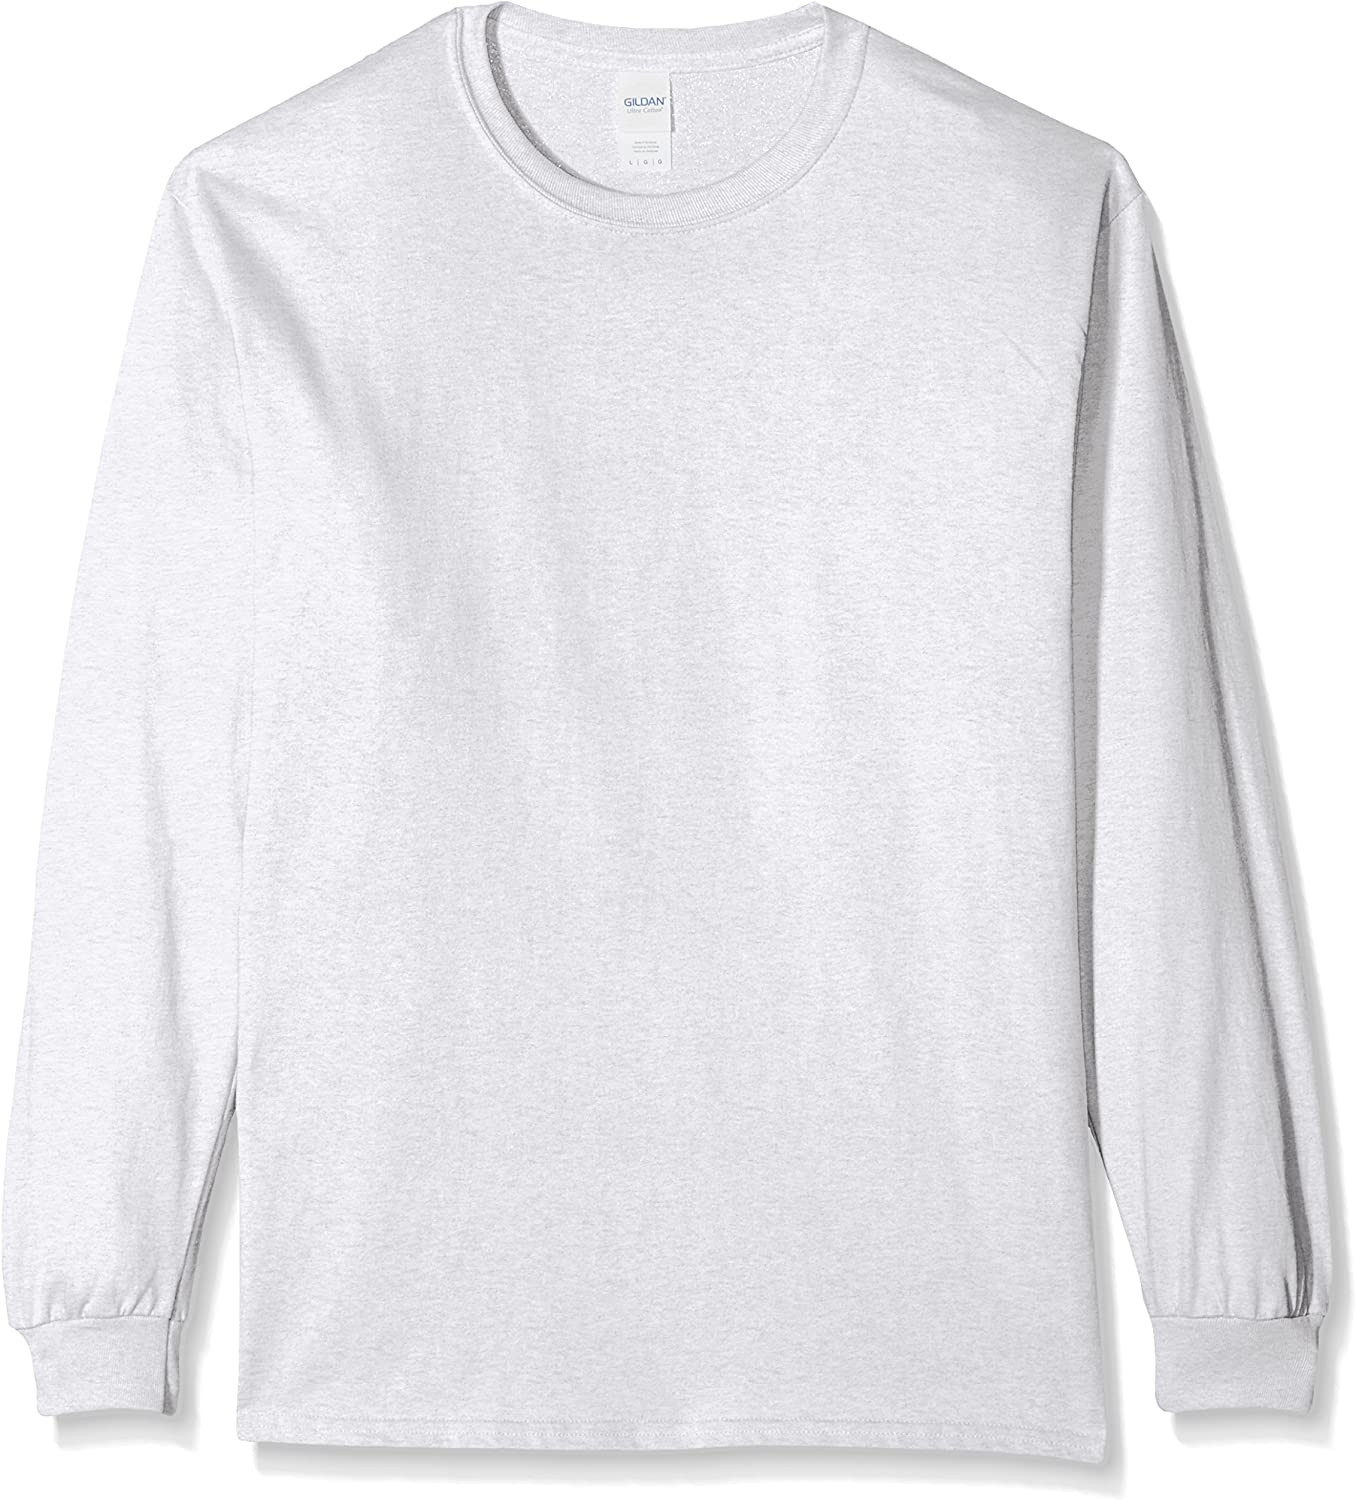 Gildan Ultra Cotton L/Sleeve tee, Camiseta para Hombre